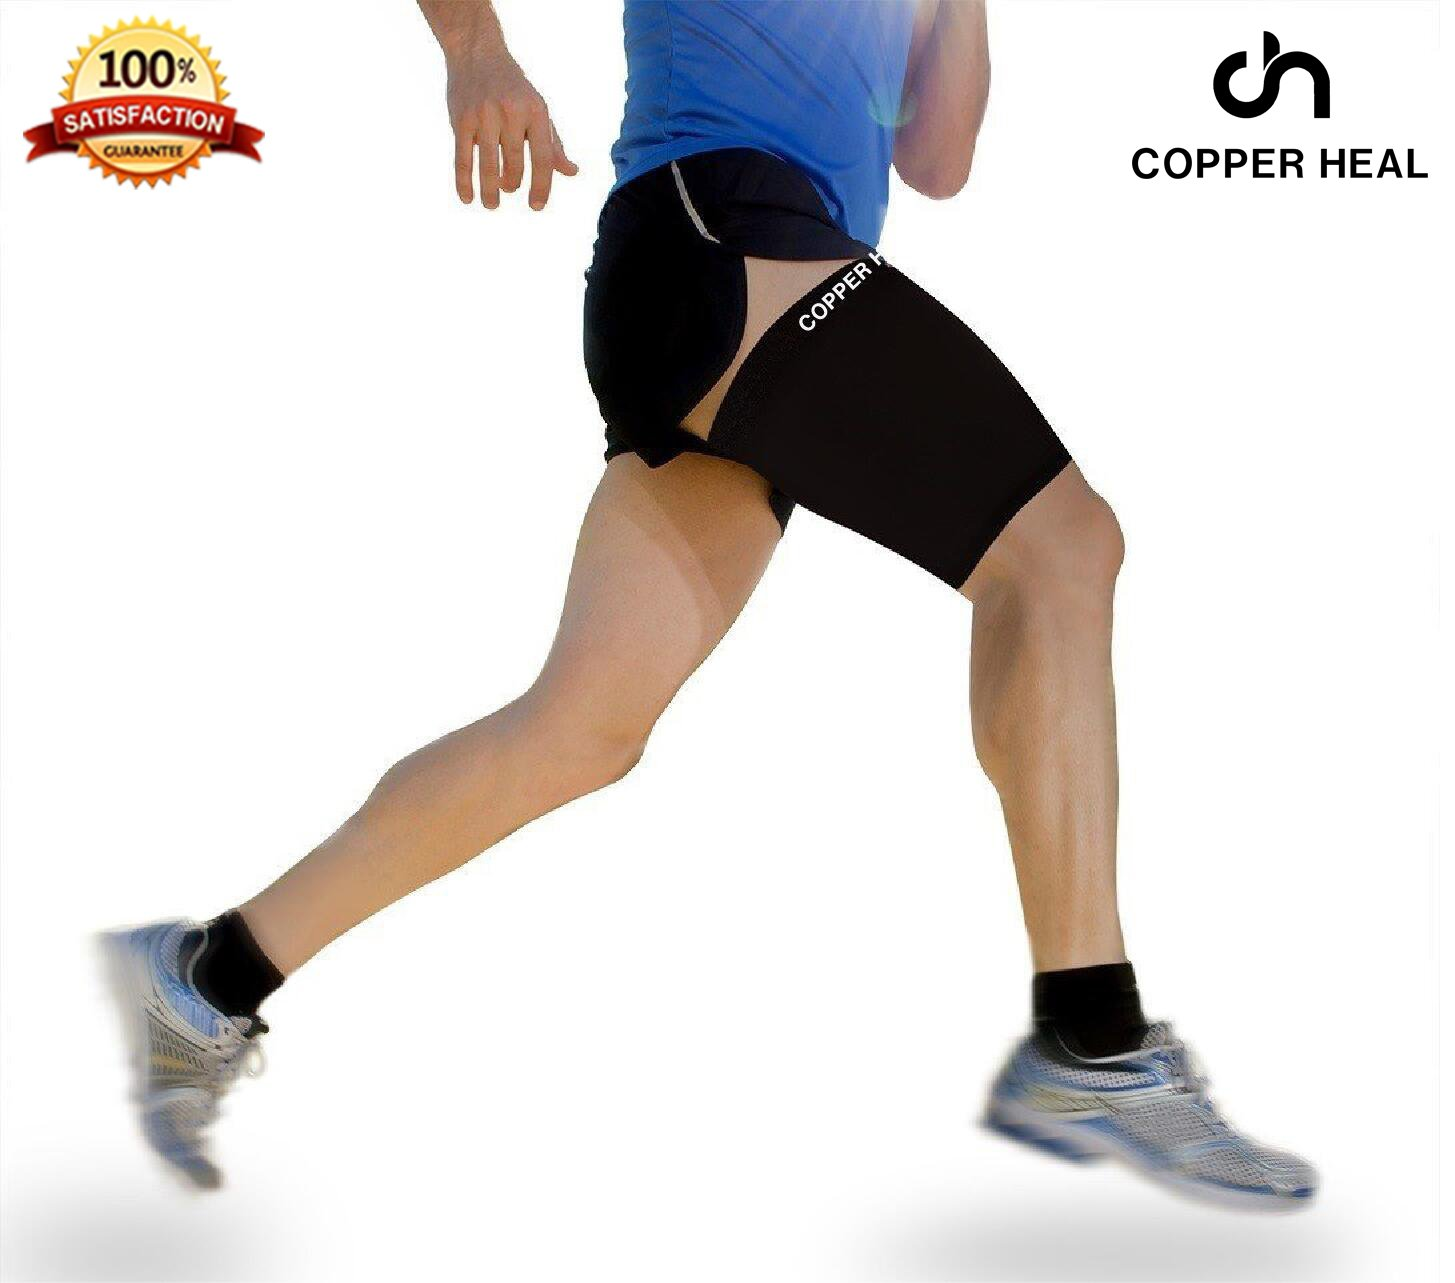 Thigh Compression Recovery Sleeve by COPPER HEAL - Recover from Sore Pulled Hamstring and Groin Strain